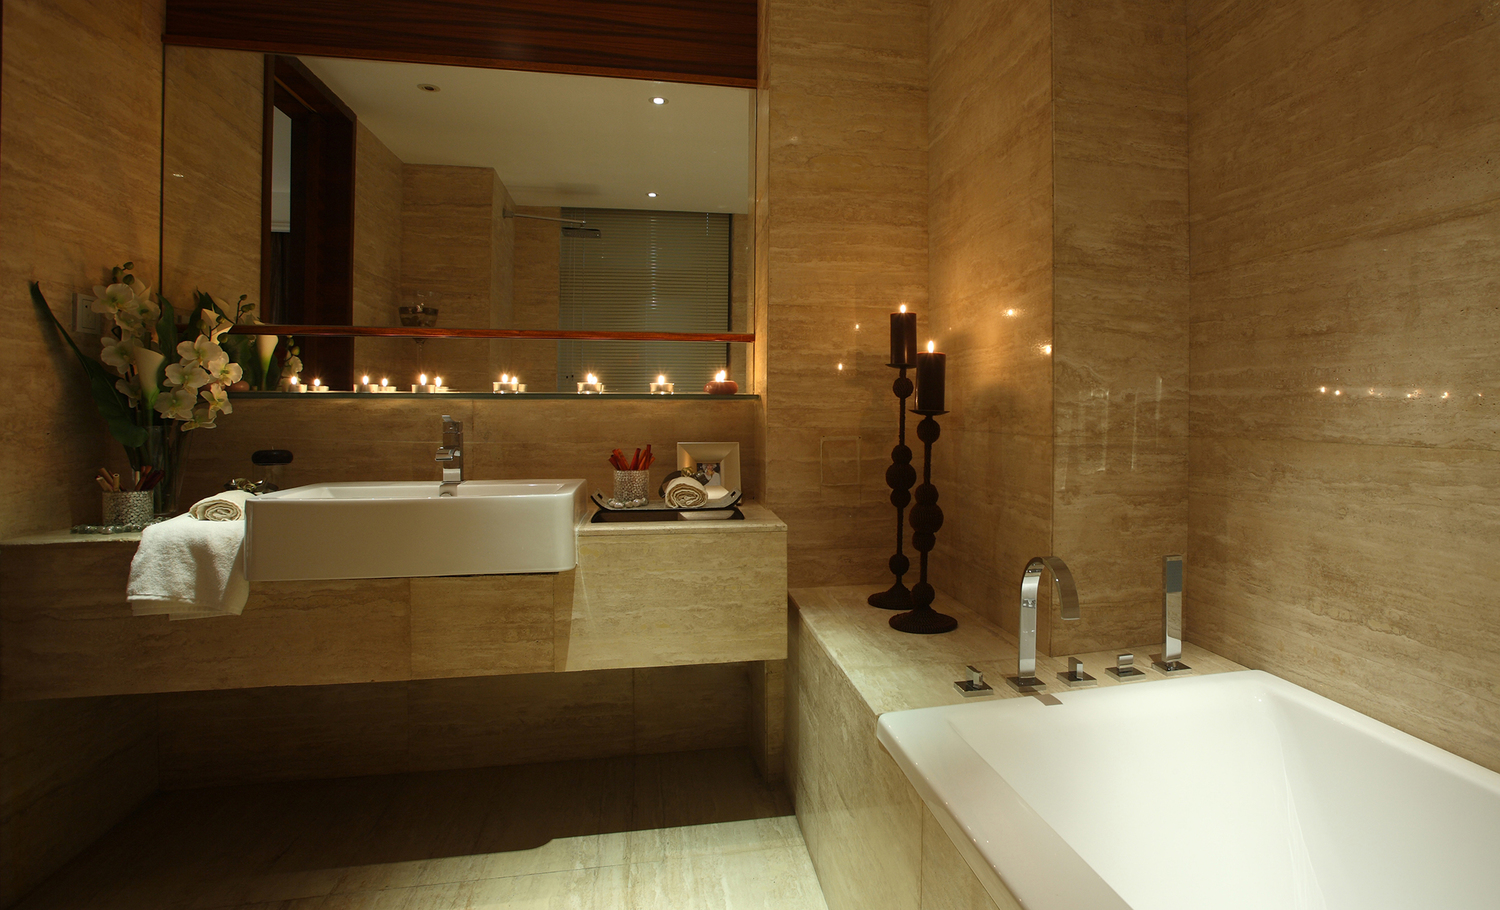 Bathroom Renovations Vancouver Home Renovations General Contractor - Bathroom remodel vancouver bc